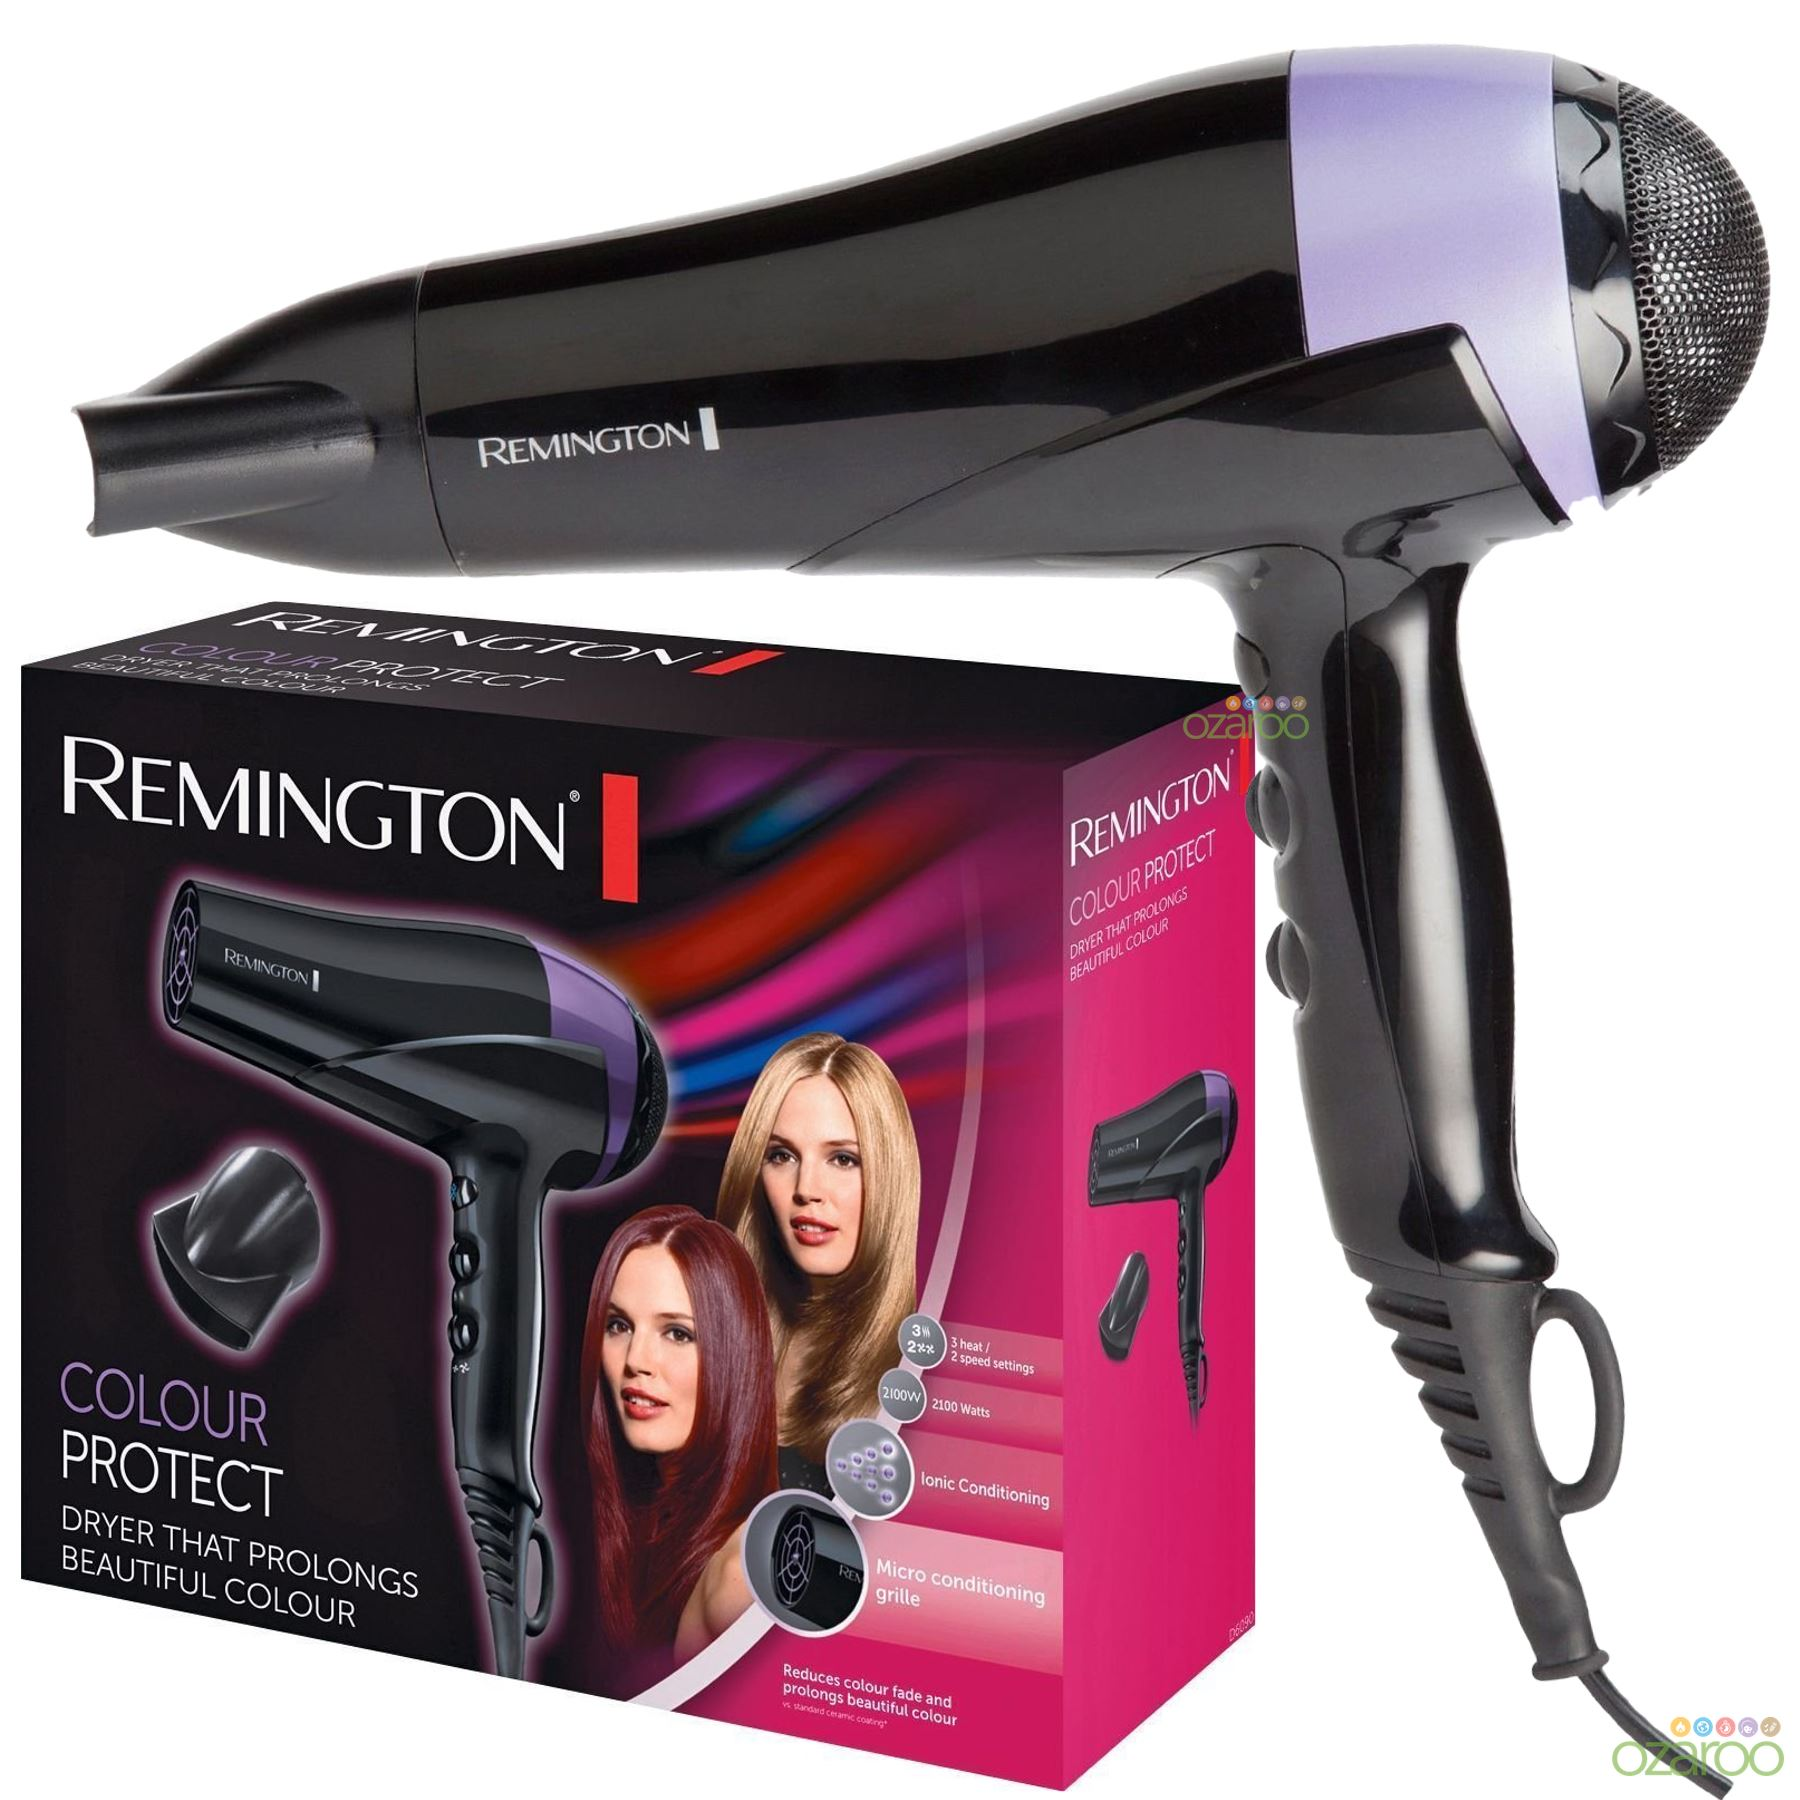 Remington d6090 colour protect hair dryer